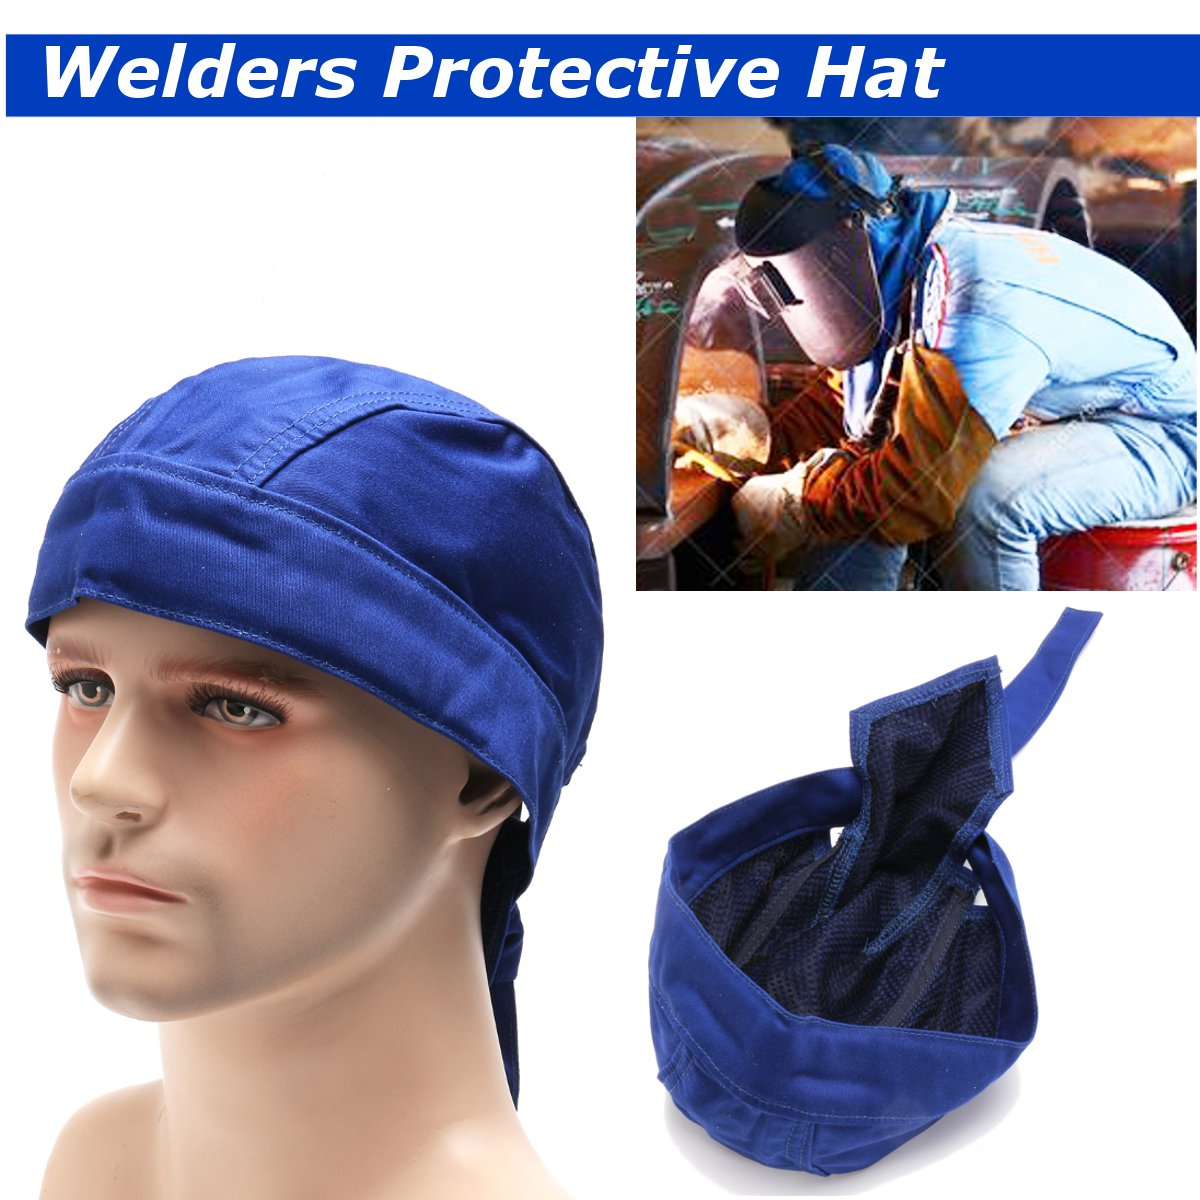 Fashion Style Welding Caps for Welders Cotton